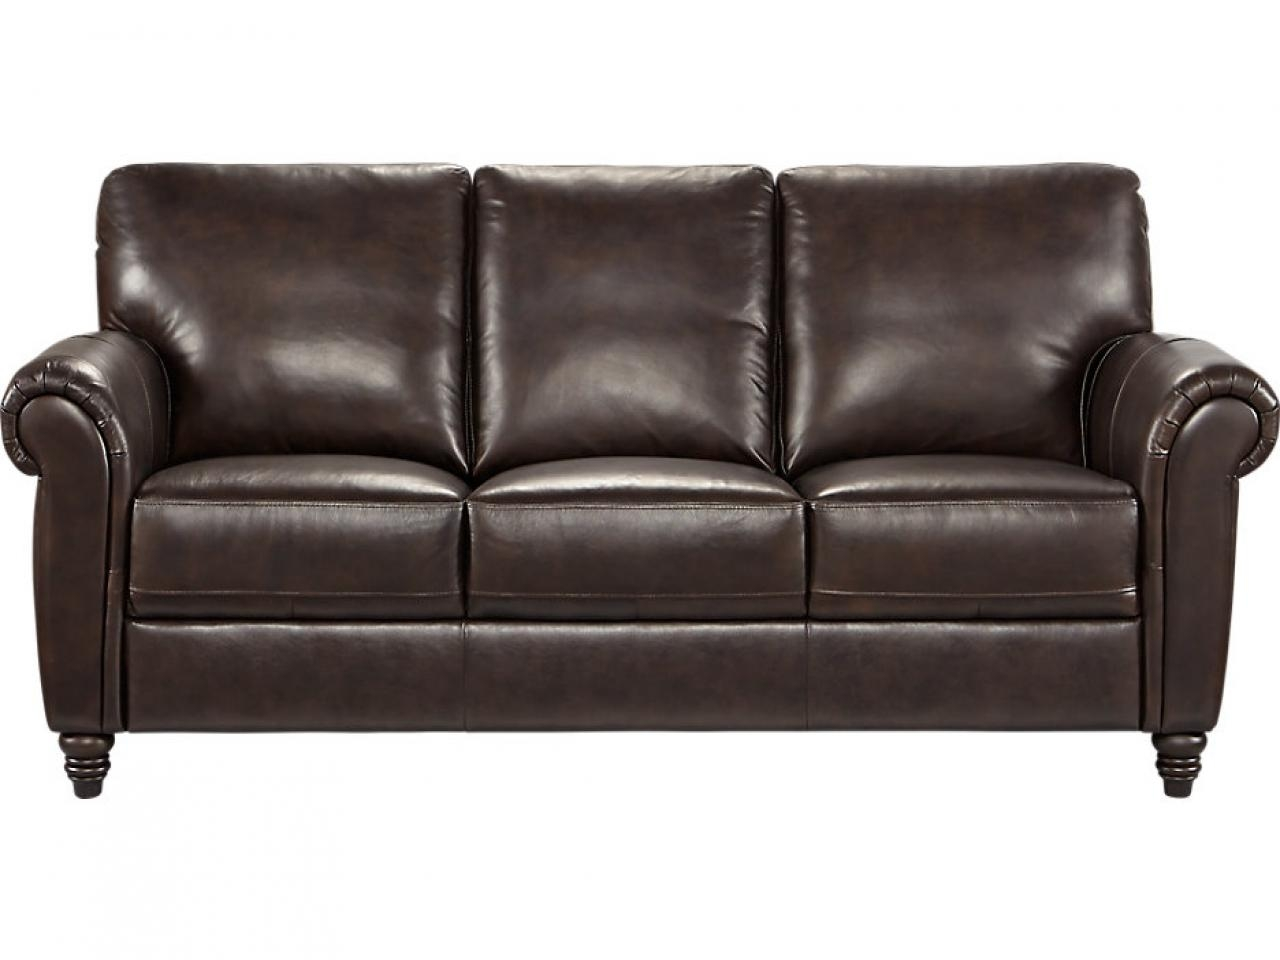 Leather Furniture Colors, Leather Sofas Old Fashioned Leather Sofa Regarding Old Fashioned Sofas (Image 4 of 20)